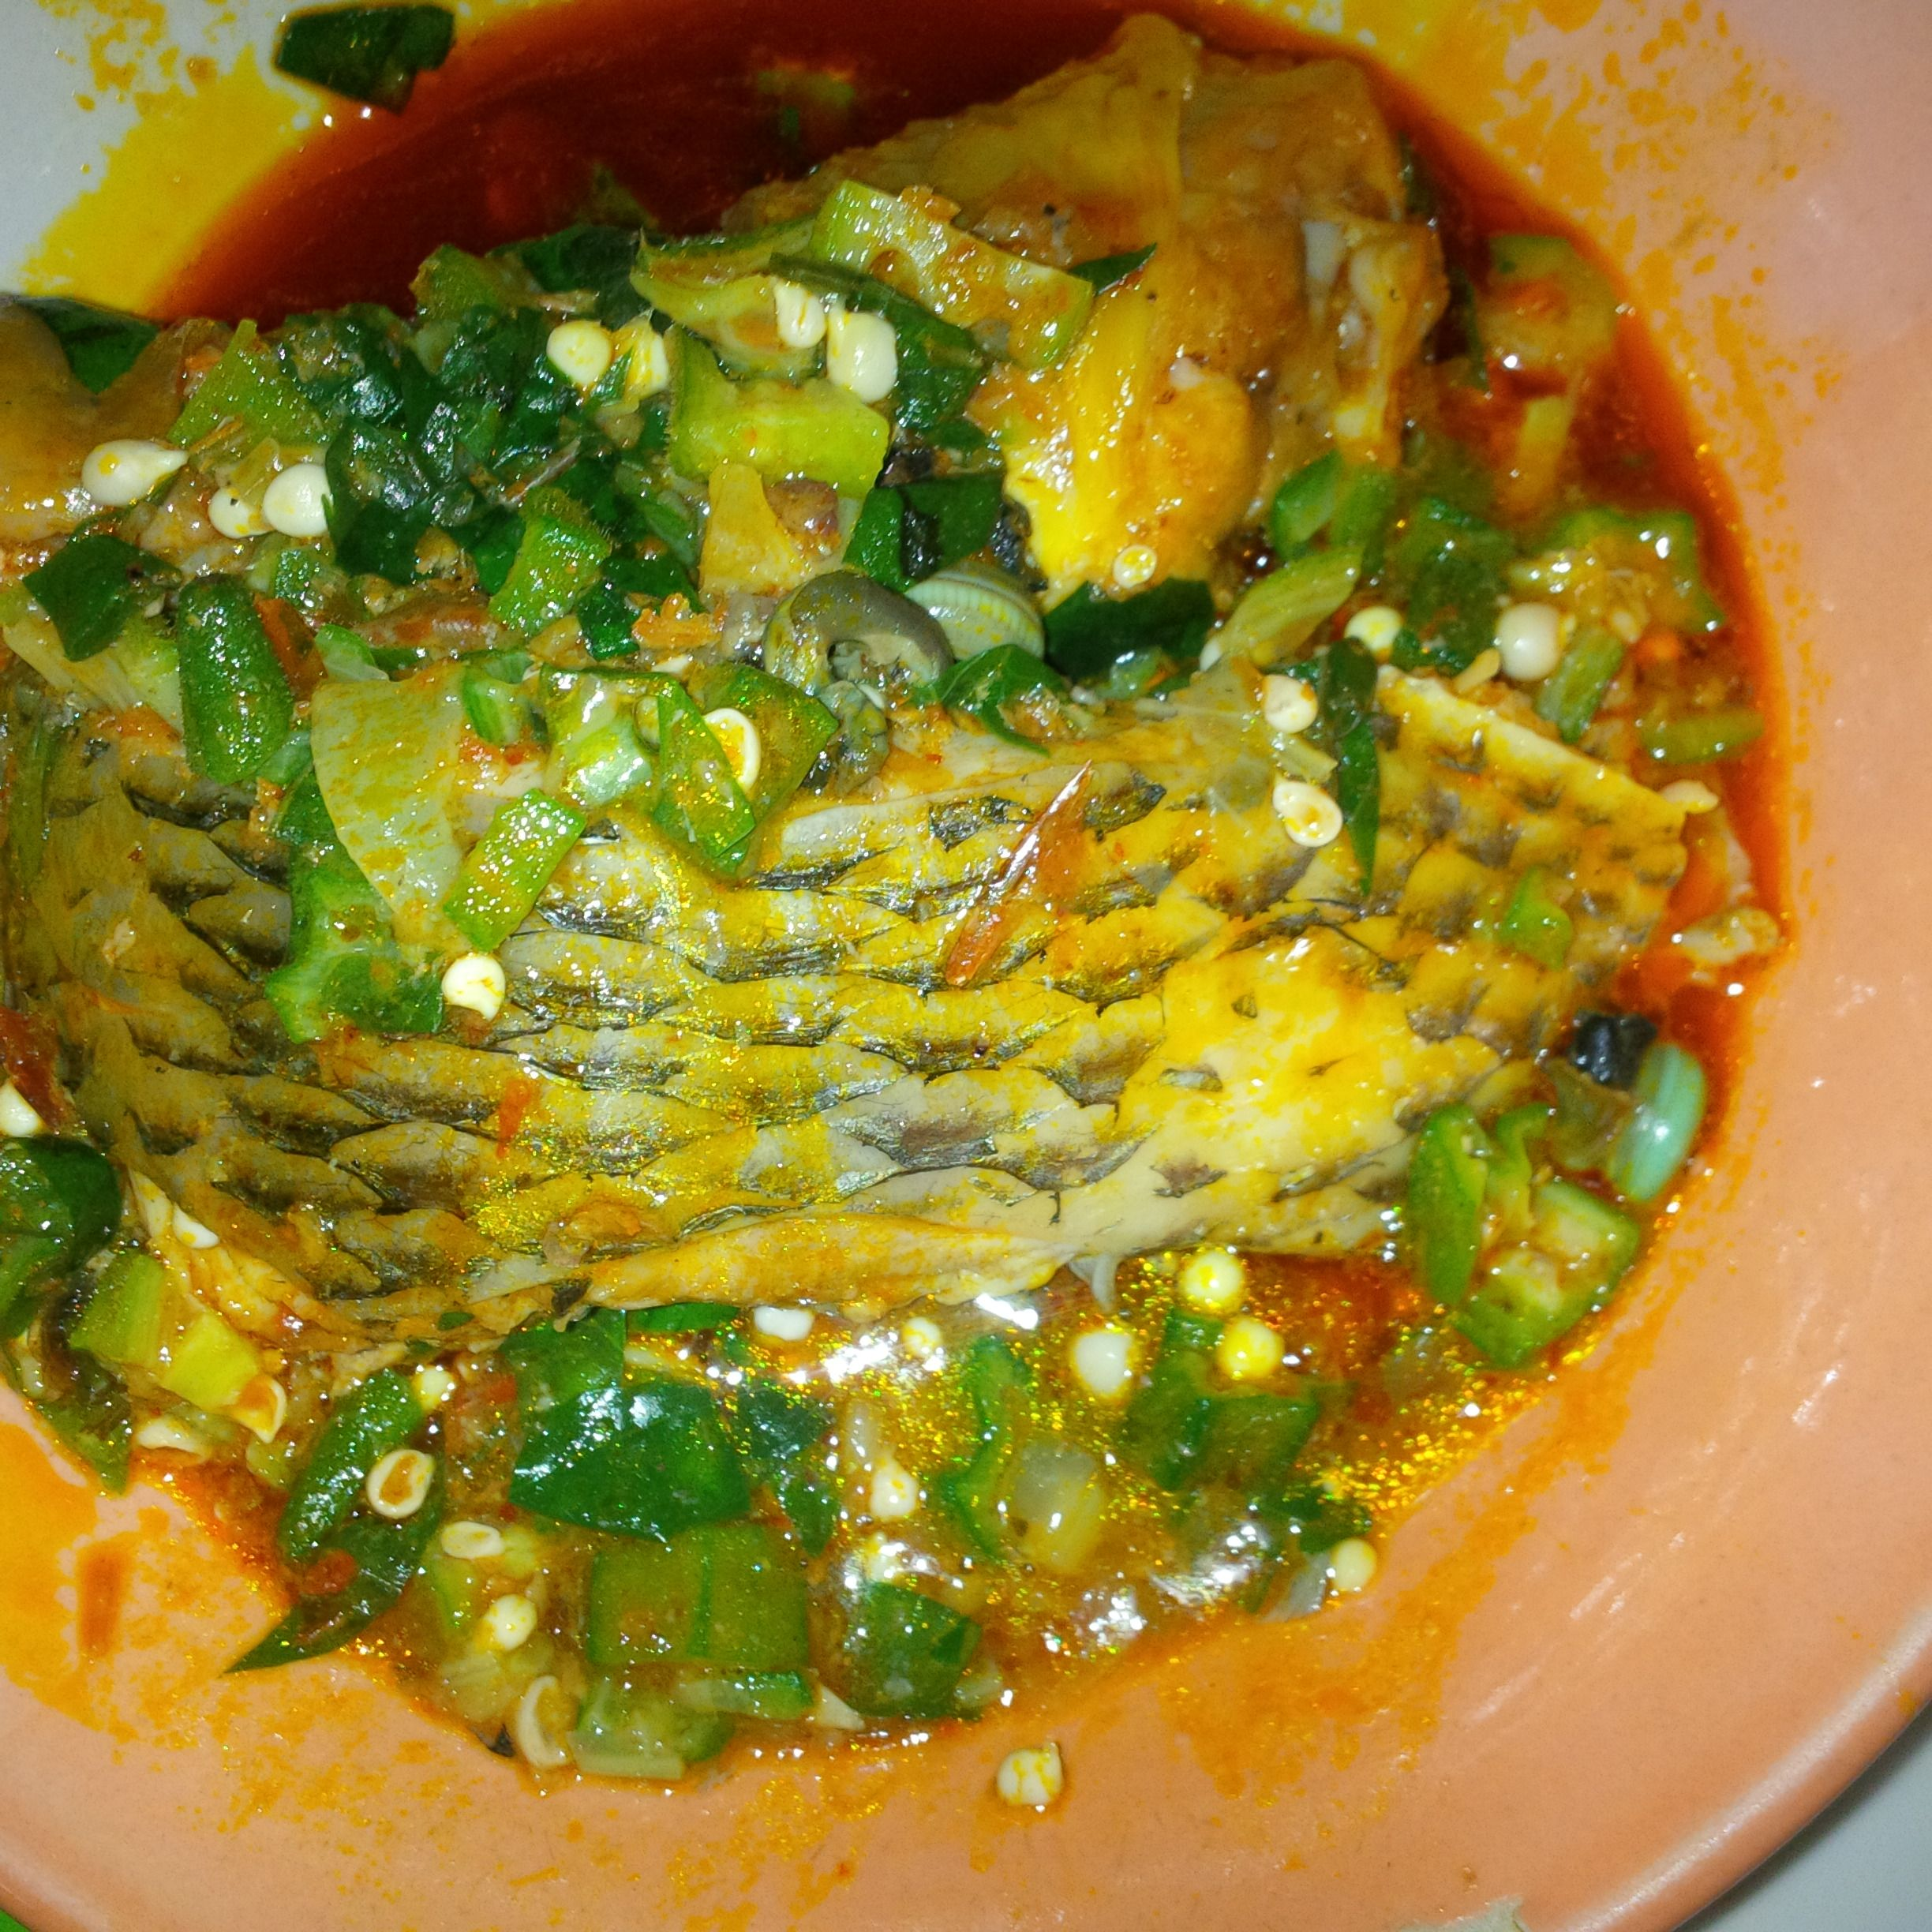 Okro soup with tilapia nigerian food pinterest for Authentic african cuisine from ghana